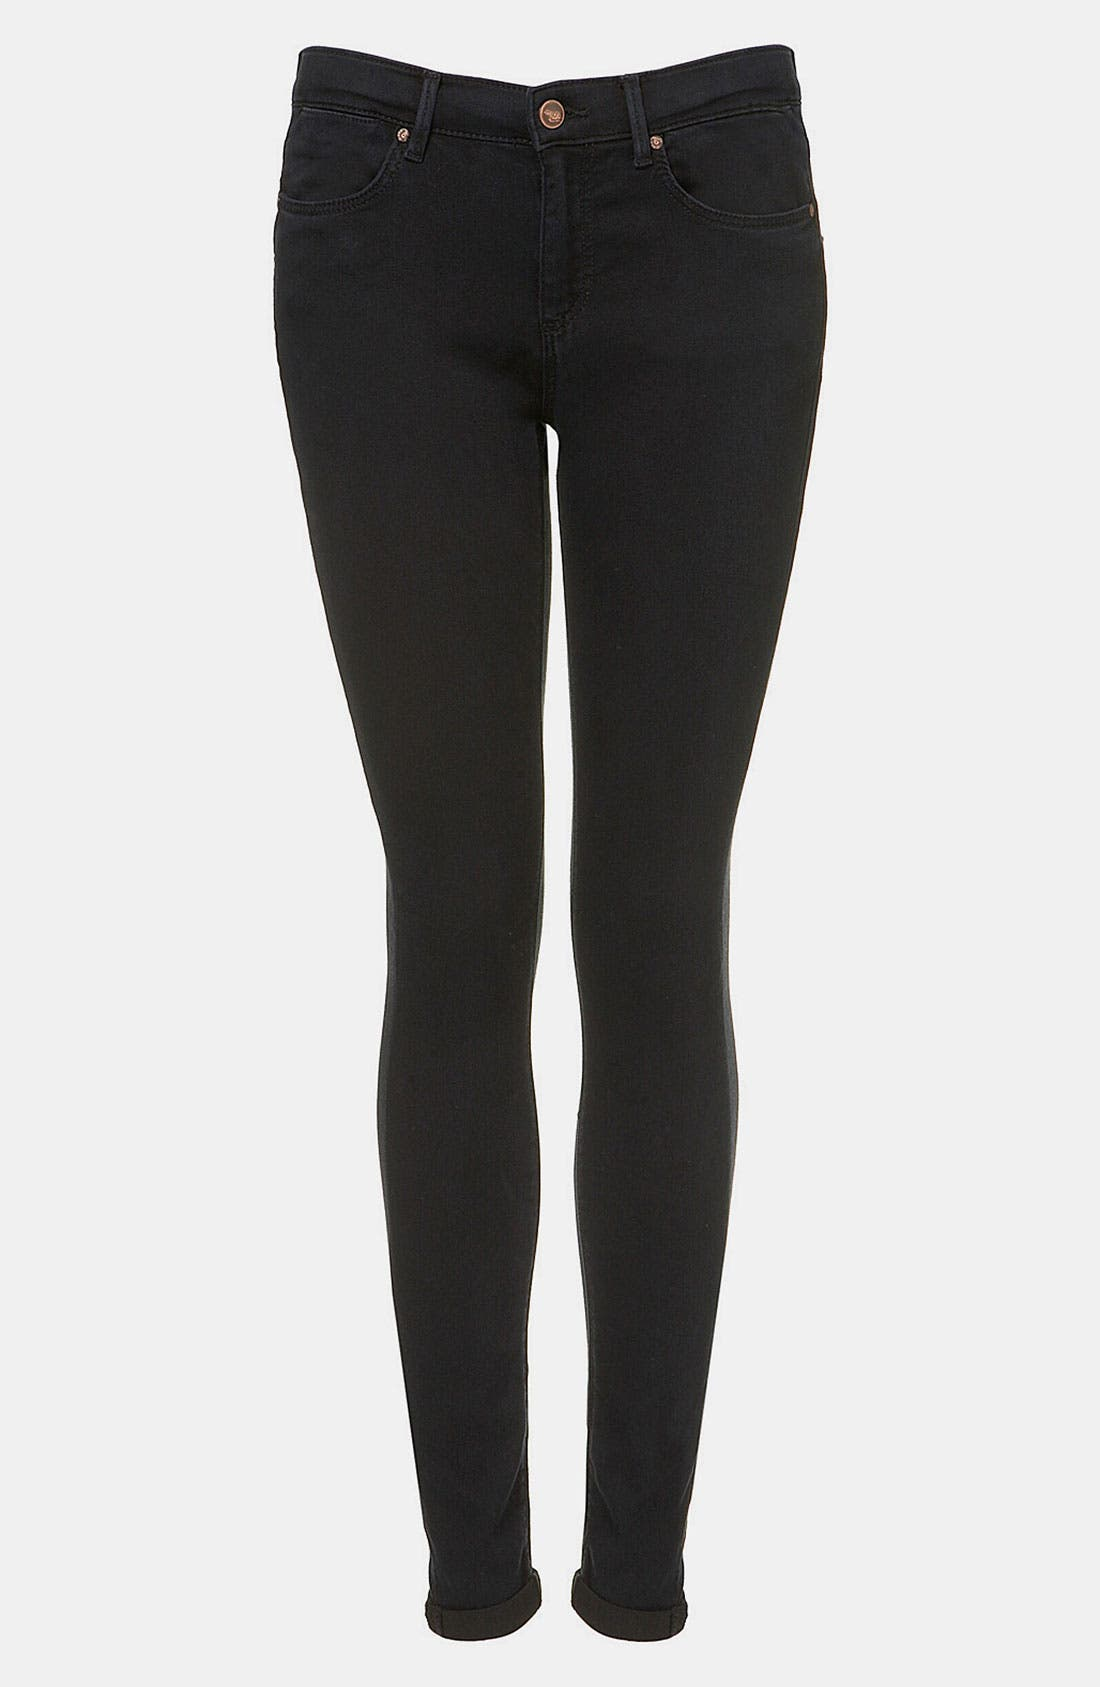 Main Image - Topshop Moto 'Leigh' Skinny Jeans (Blue Black)